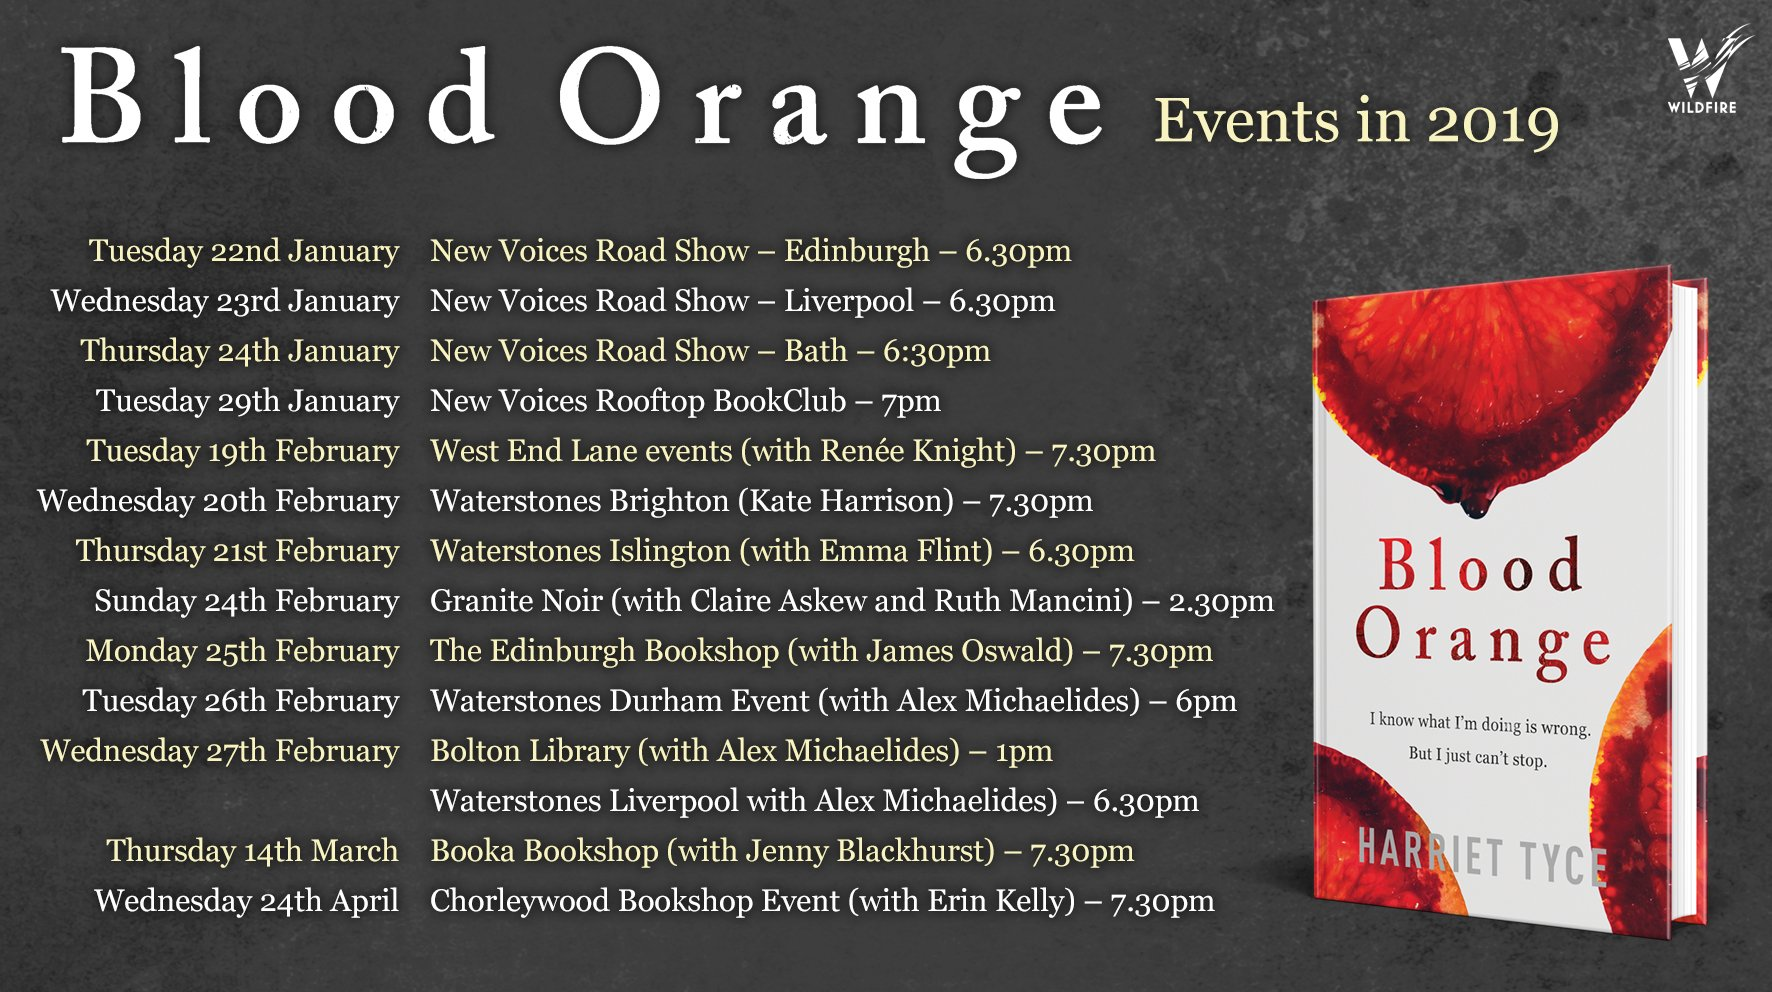 Tickets for many of these events are now available – click on the Events button on the menu above to find booking links.